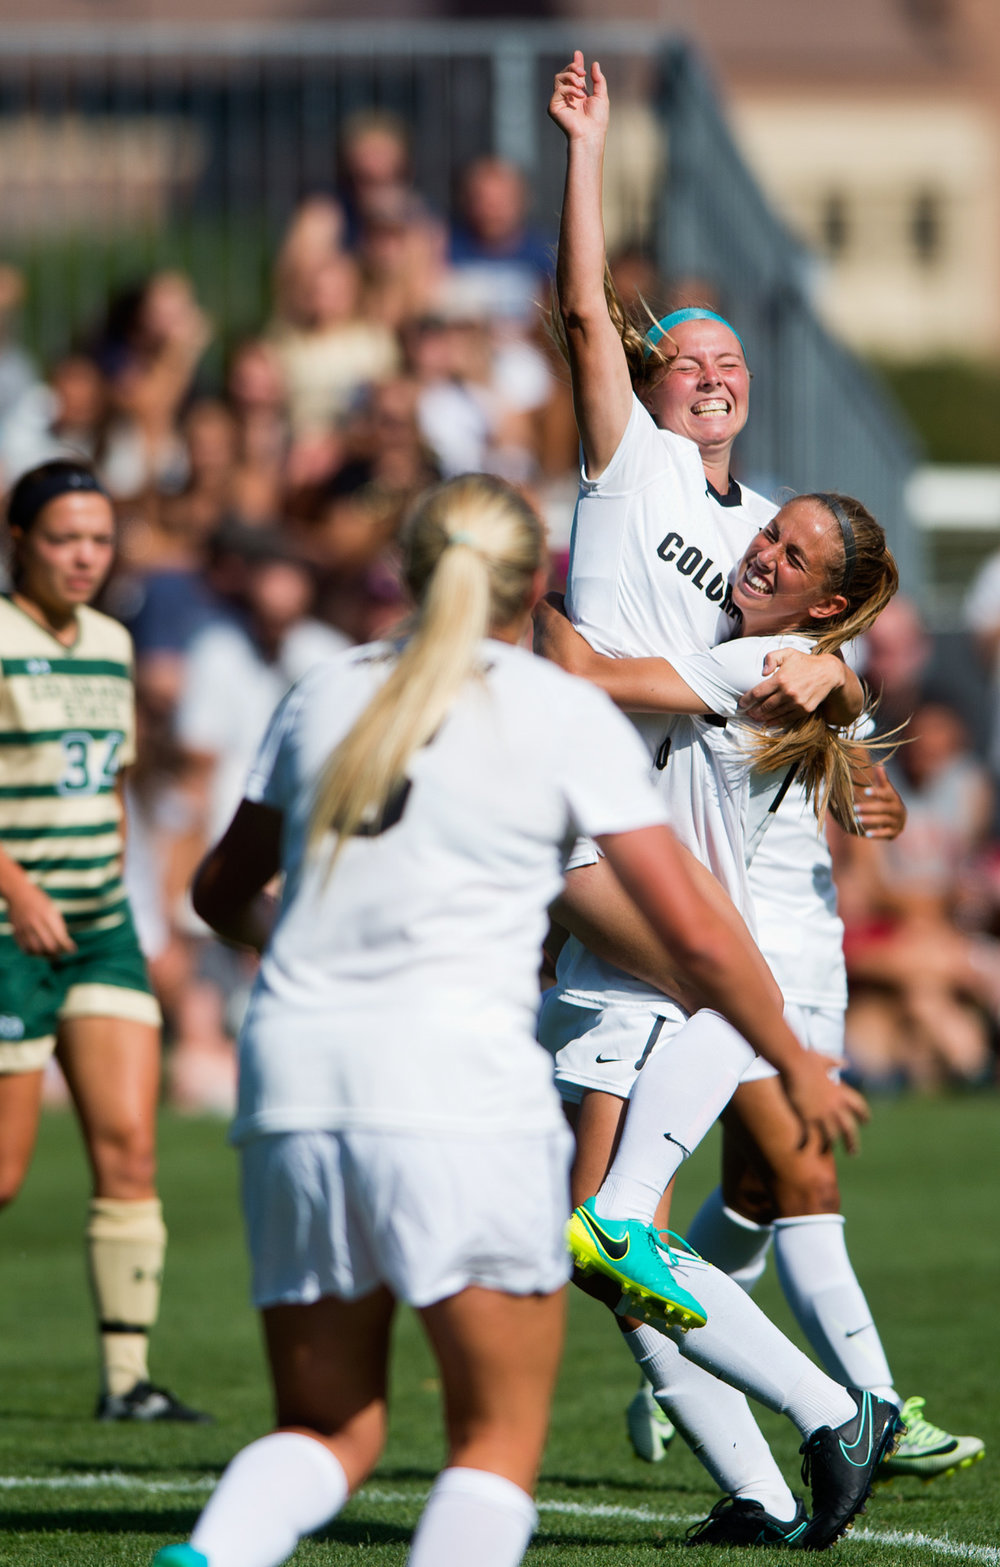 CU's Danica Evans celebrates after scoring the second goal for the Buffs during the soccer game at Prentup Field at CU Boulder in Boulder, Colo. CU Boulder defeated CSU 2-1.